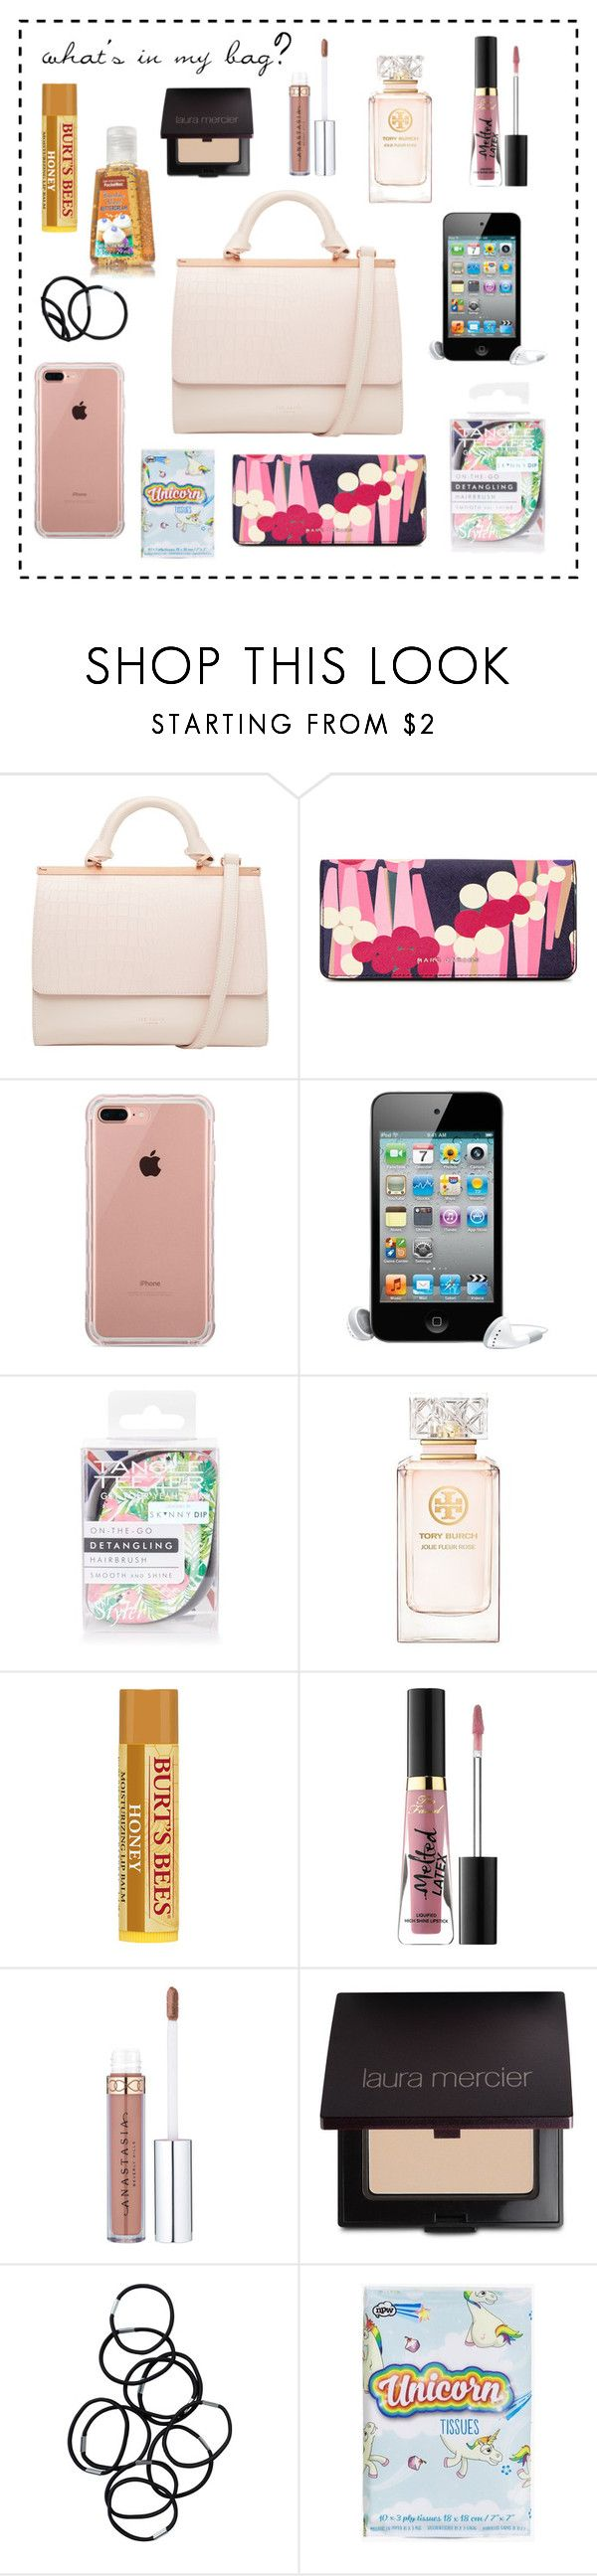 """WHAT'S INSIDE MY BAG"" by taliafzl ❤ liked on Polyvore featuring beauty, Ted Baker, Marc Jacobs, Belkin, Topshop, Tory Burch, Too Faced Cosmetics, Laura Mercier, Monki and Boohoo"